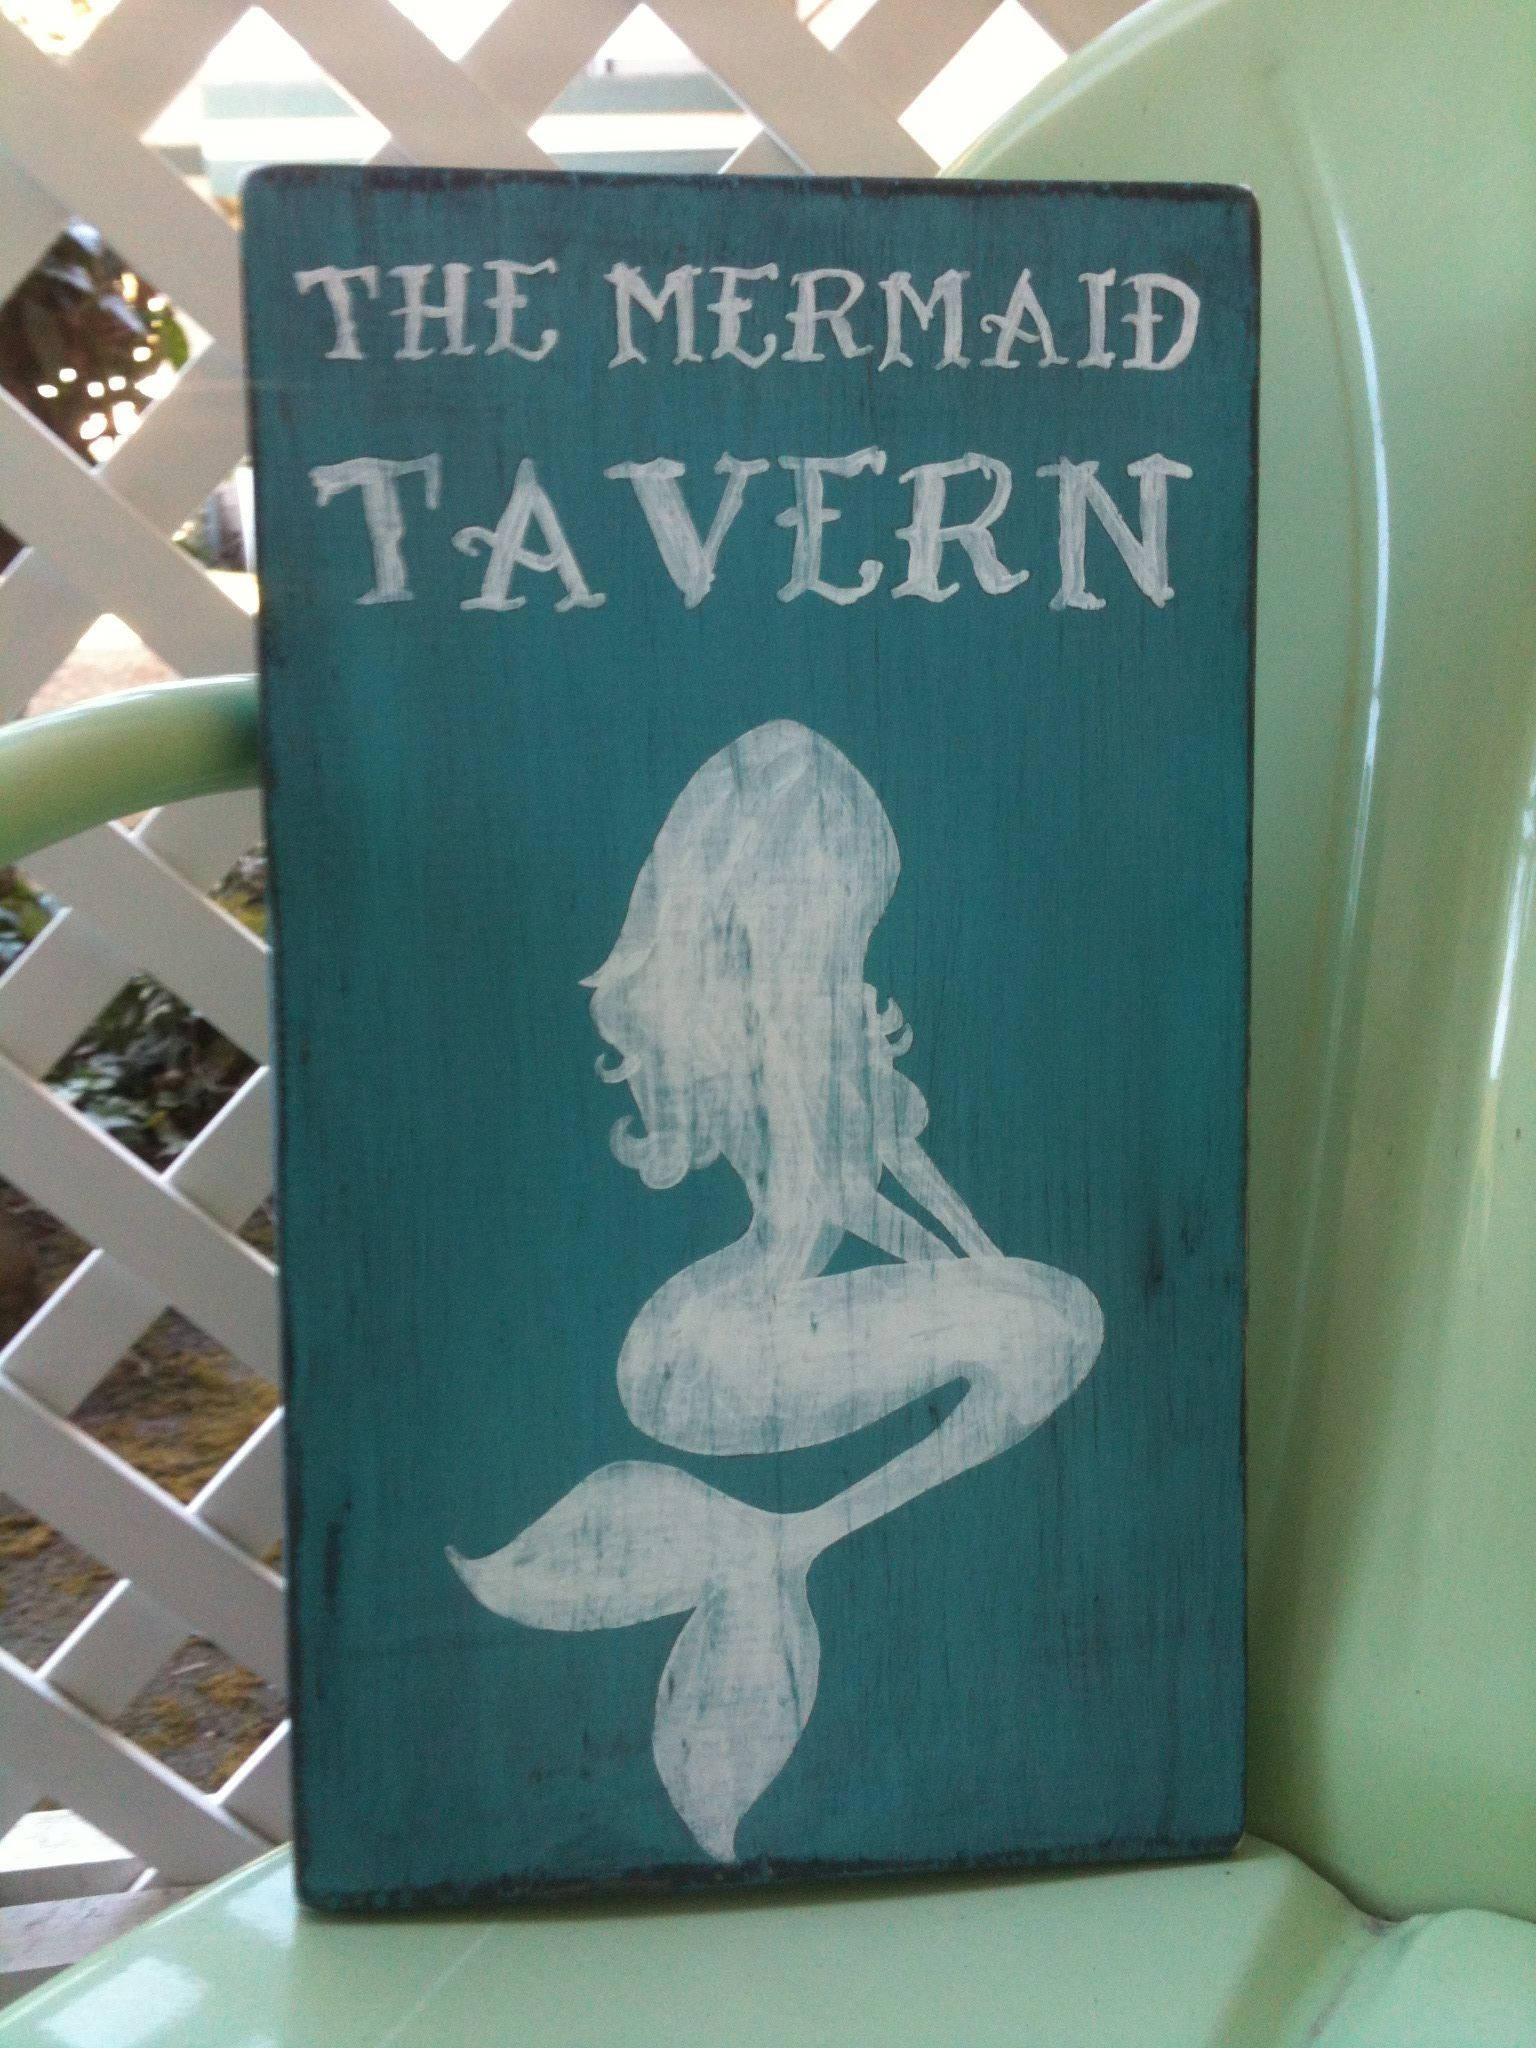 mermaid sign #mermaidsign mermaid sign #mermaidsign mermaid sign #mermaidsign mermaid sign #mermaidsign